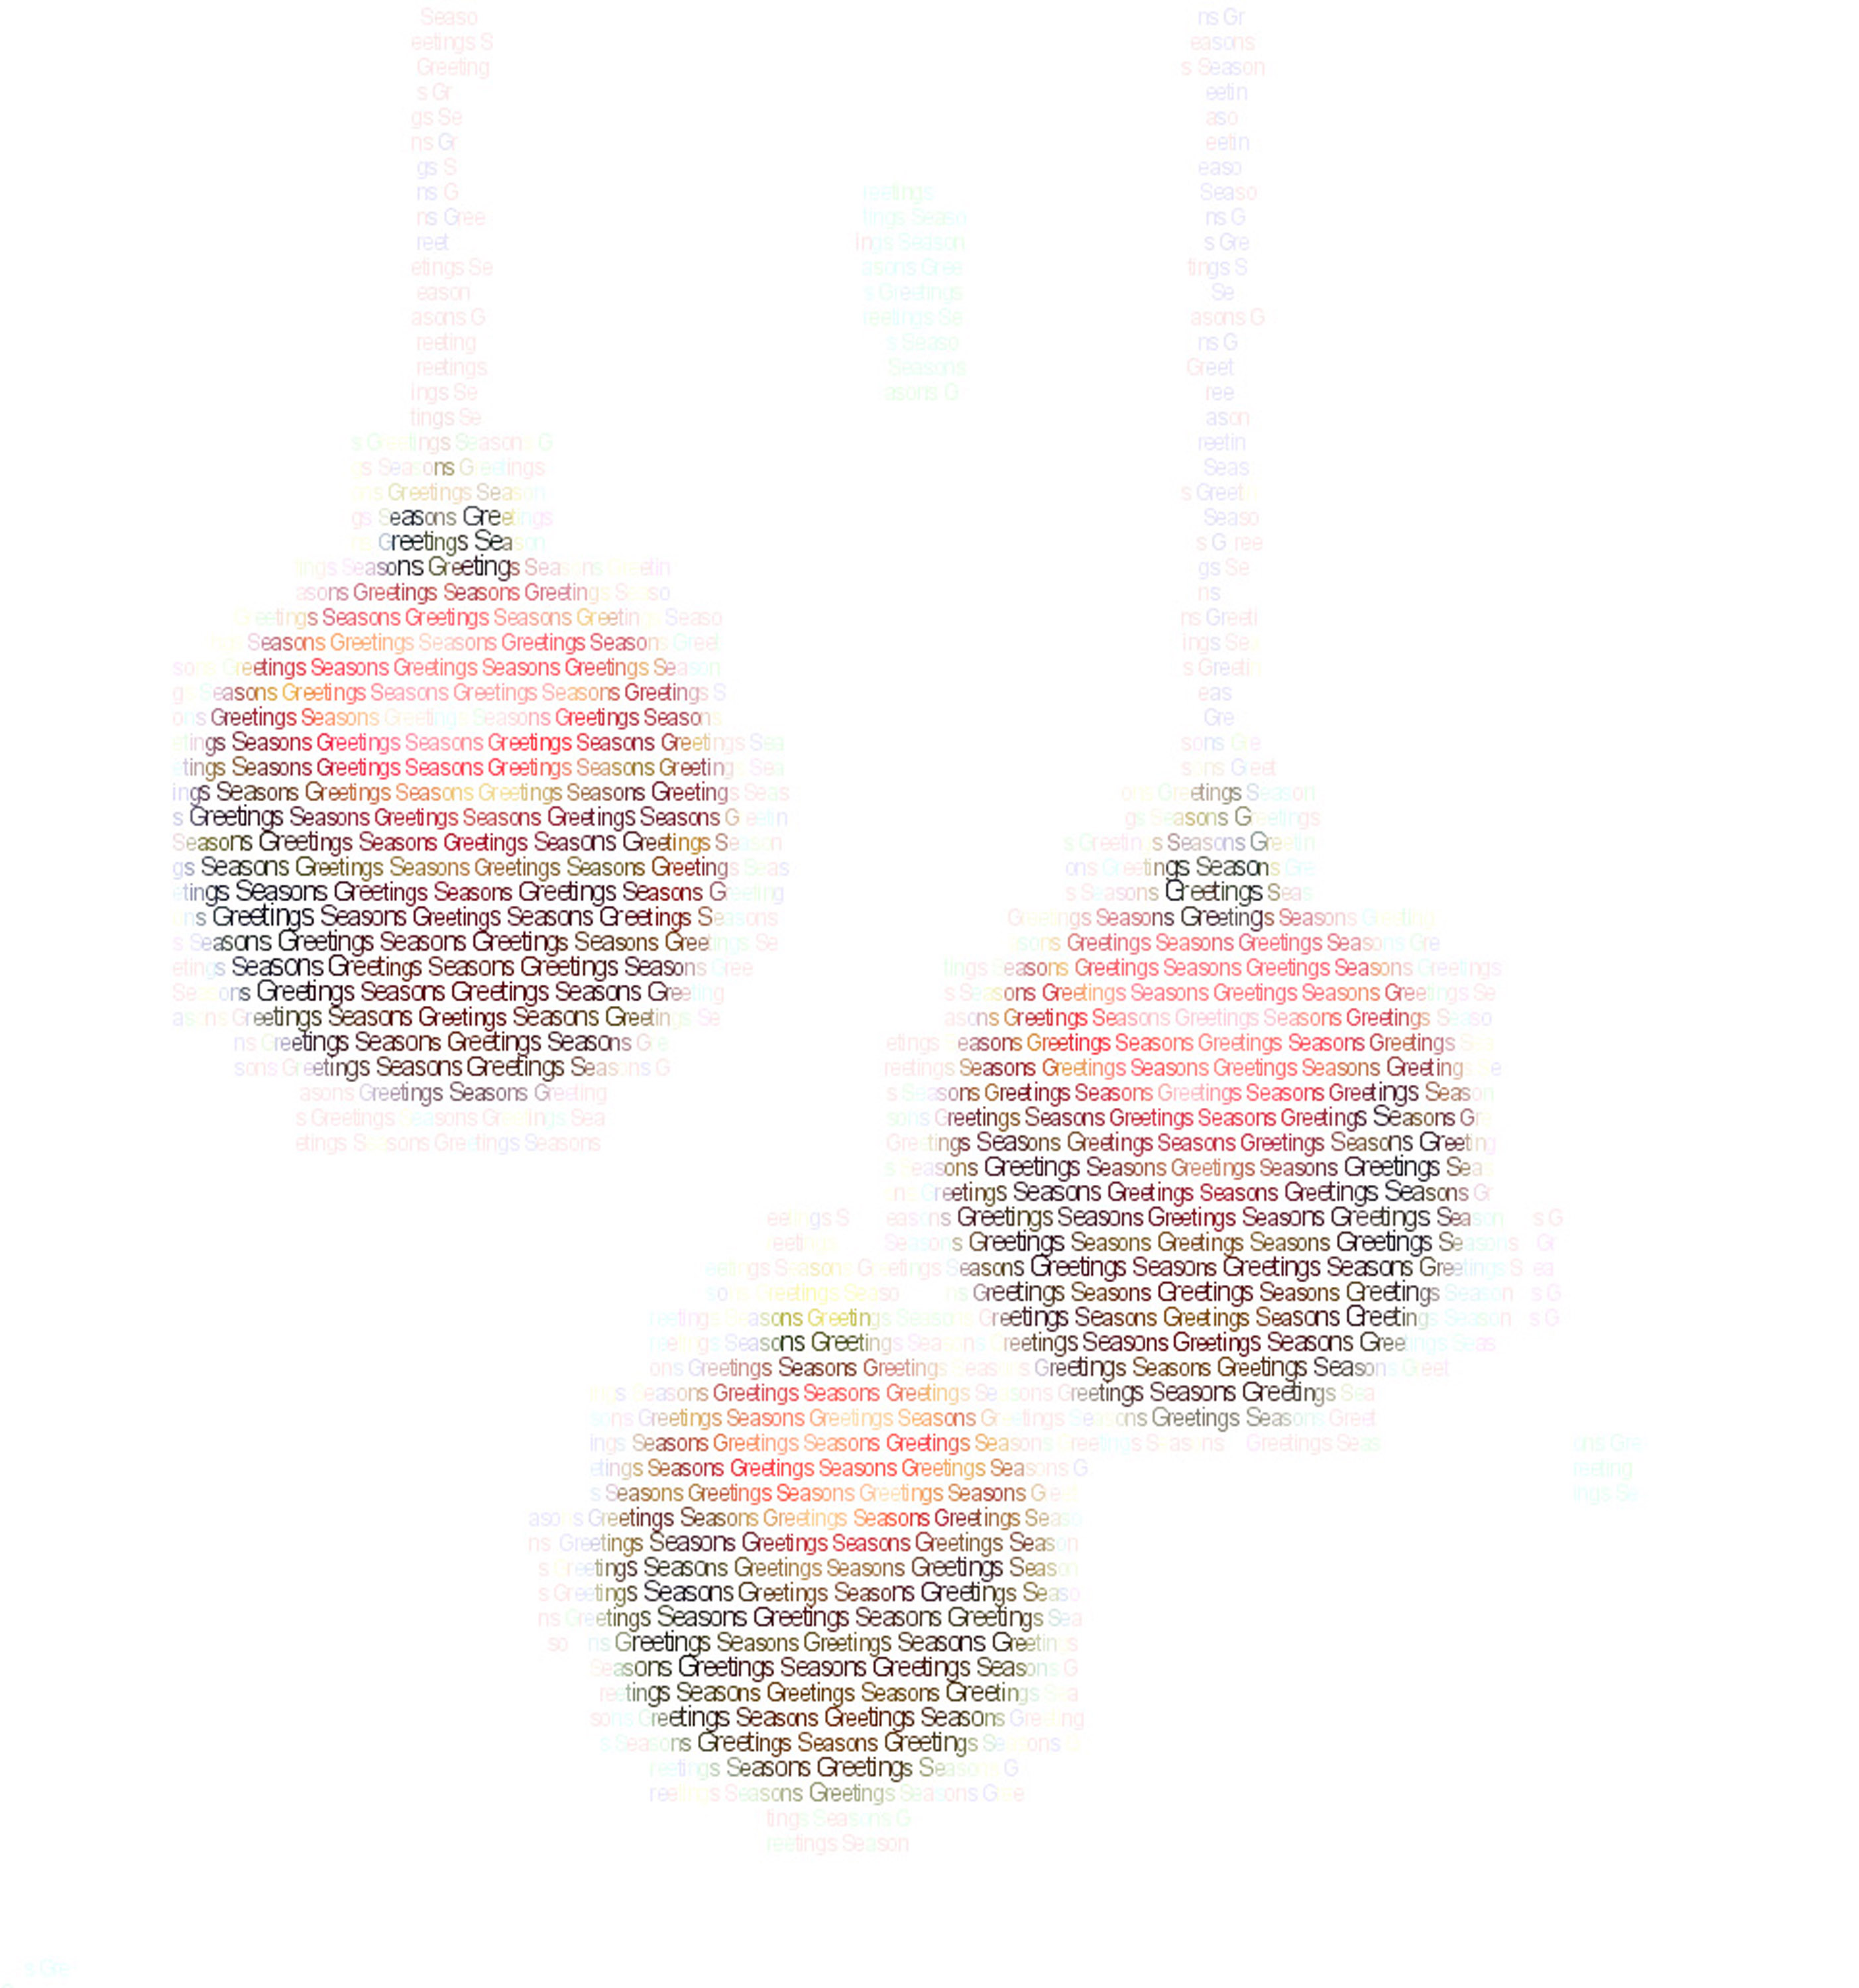 Photo of baubles in text free christmas images christmas ball ornaments created from strings of text spelling seasons greetings m4hsunfo